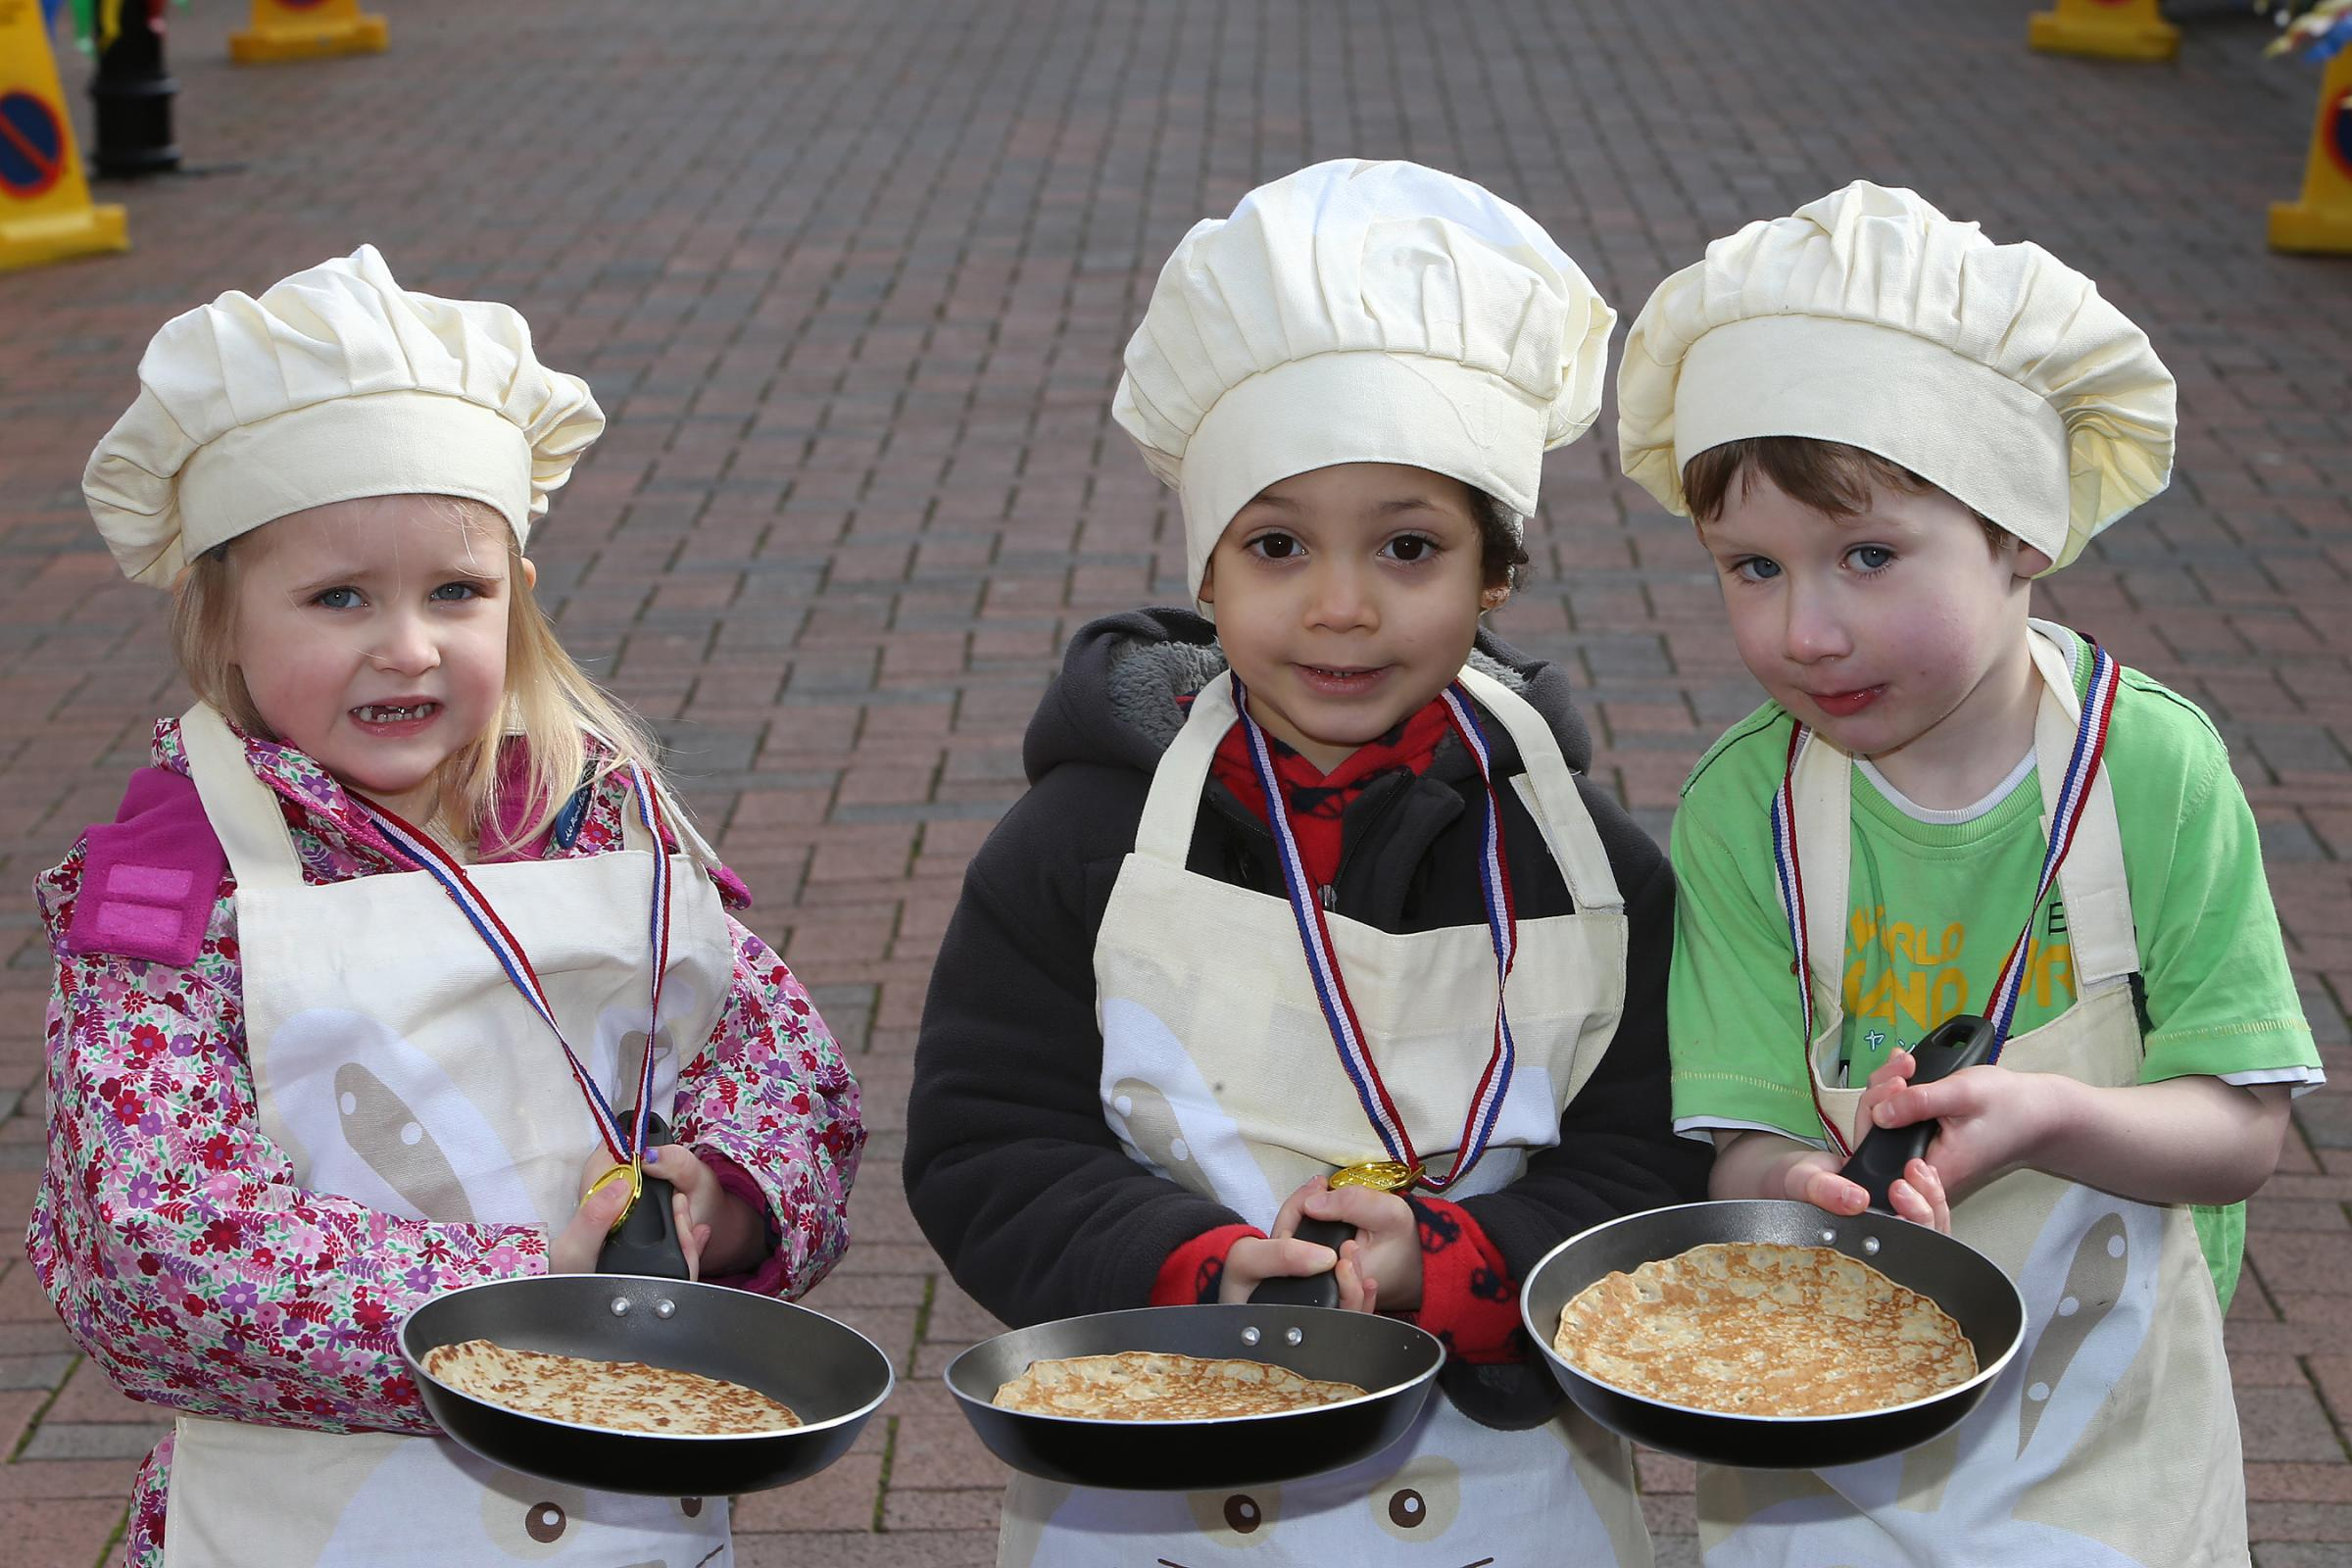 Record turnout for pancake races